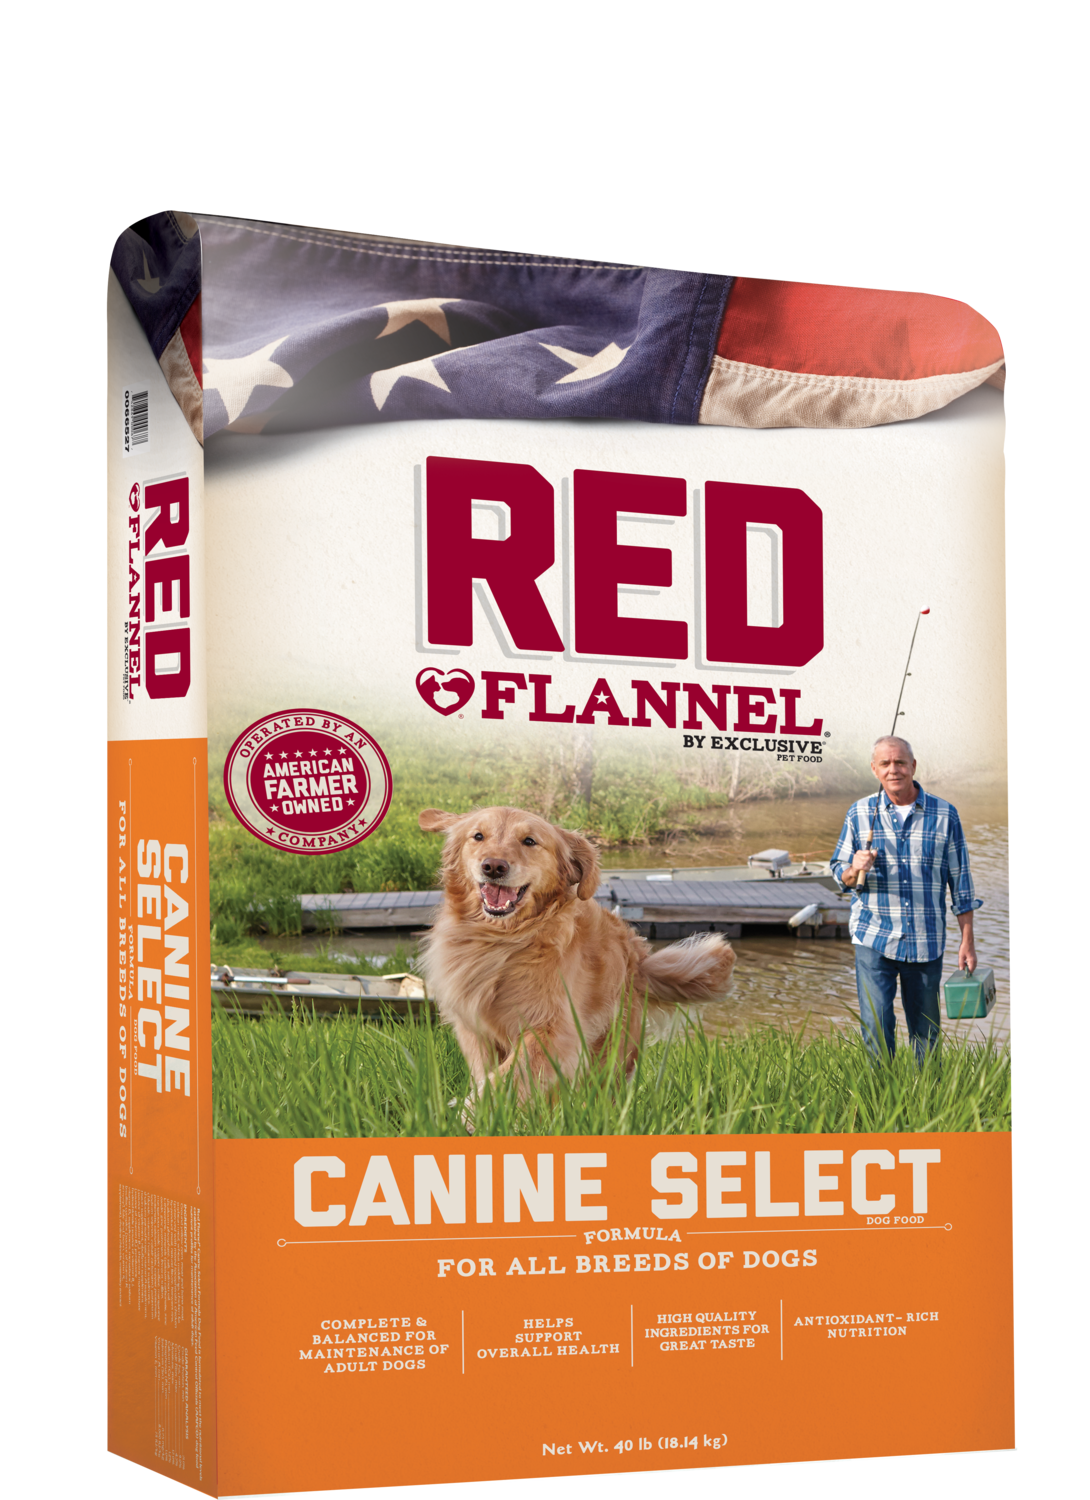 Canine Select